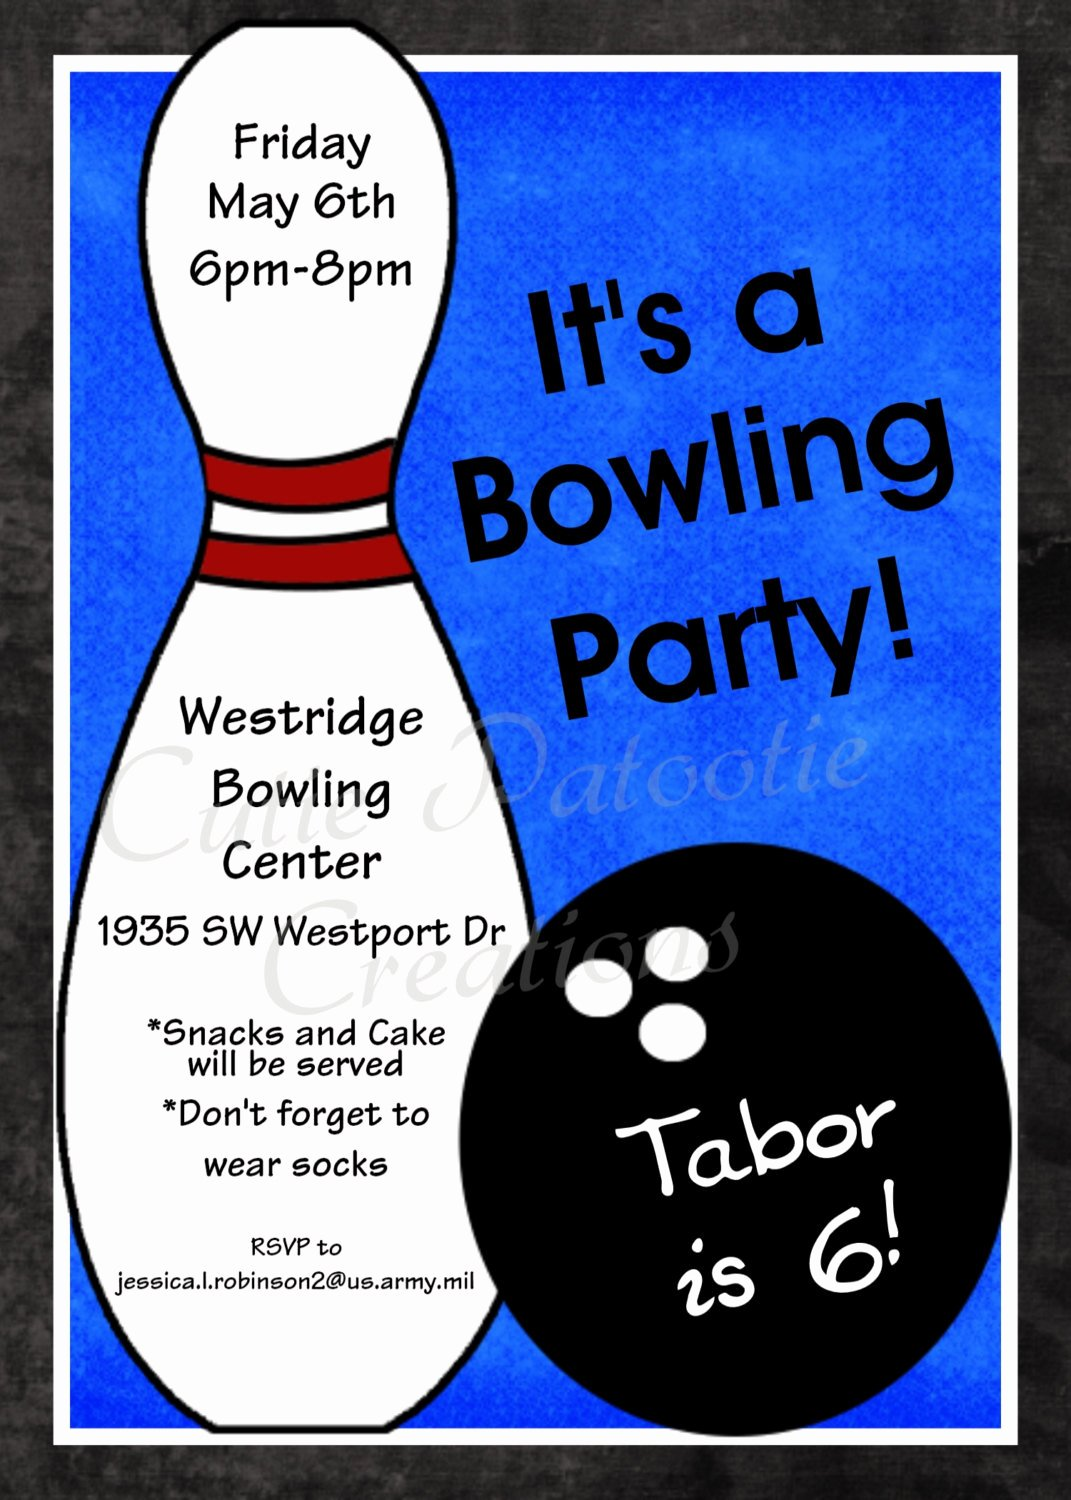 Printable Birthday Party Invitations New Bowling Birthday Invitation Printable or Printed Party Invite